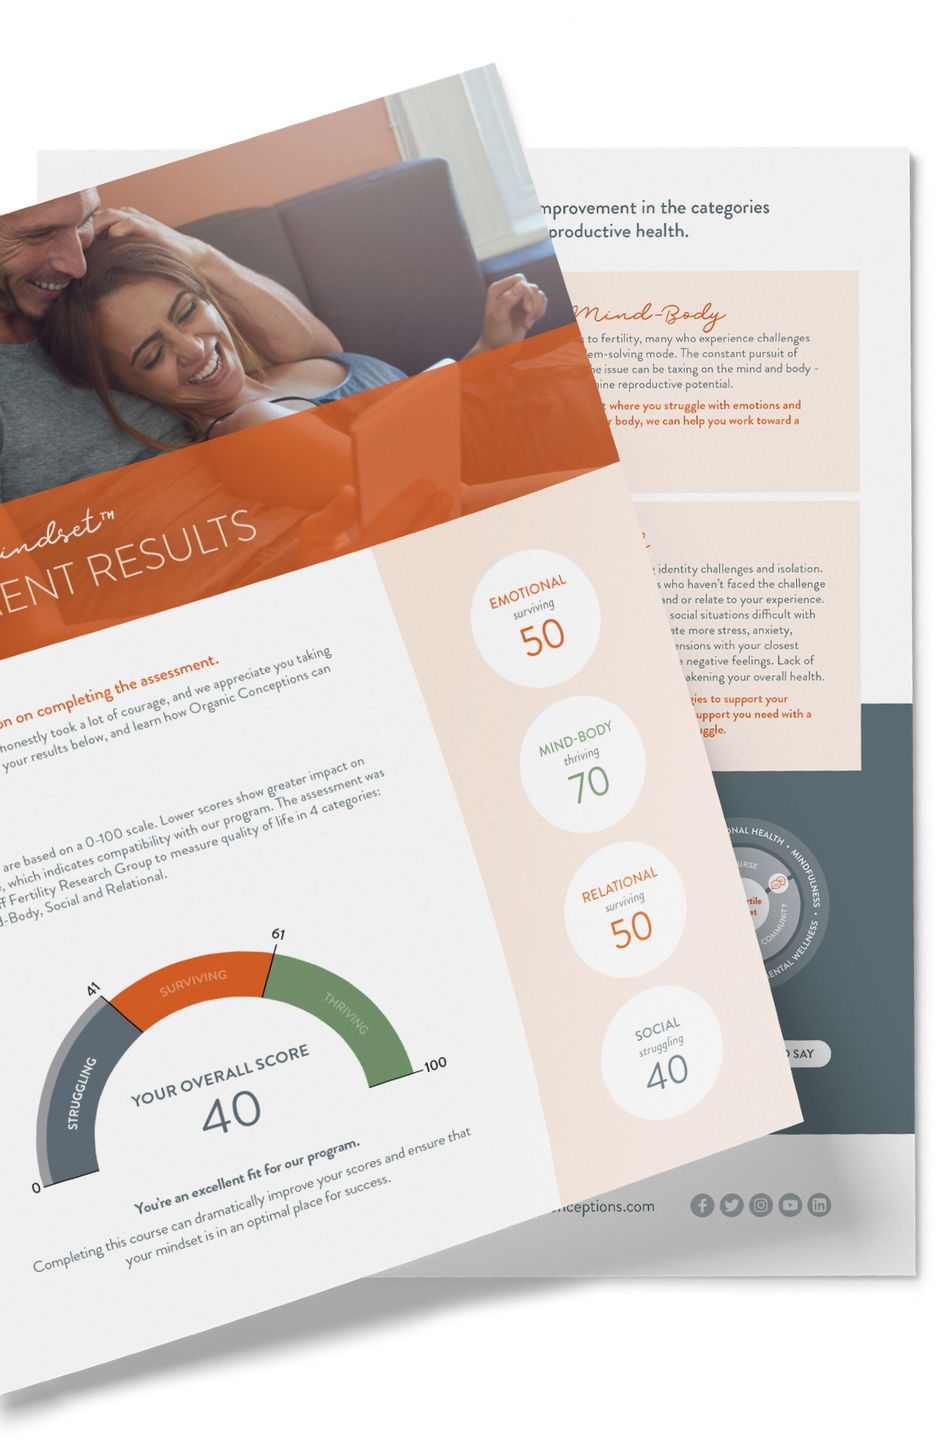 Colorful personalized report documents showing an overall score of 40, stating